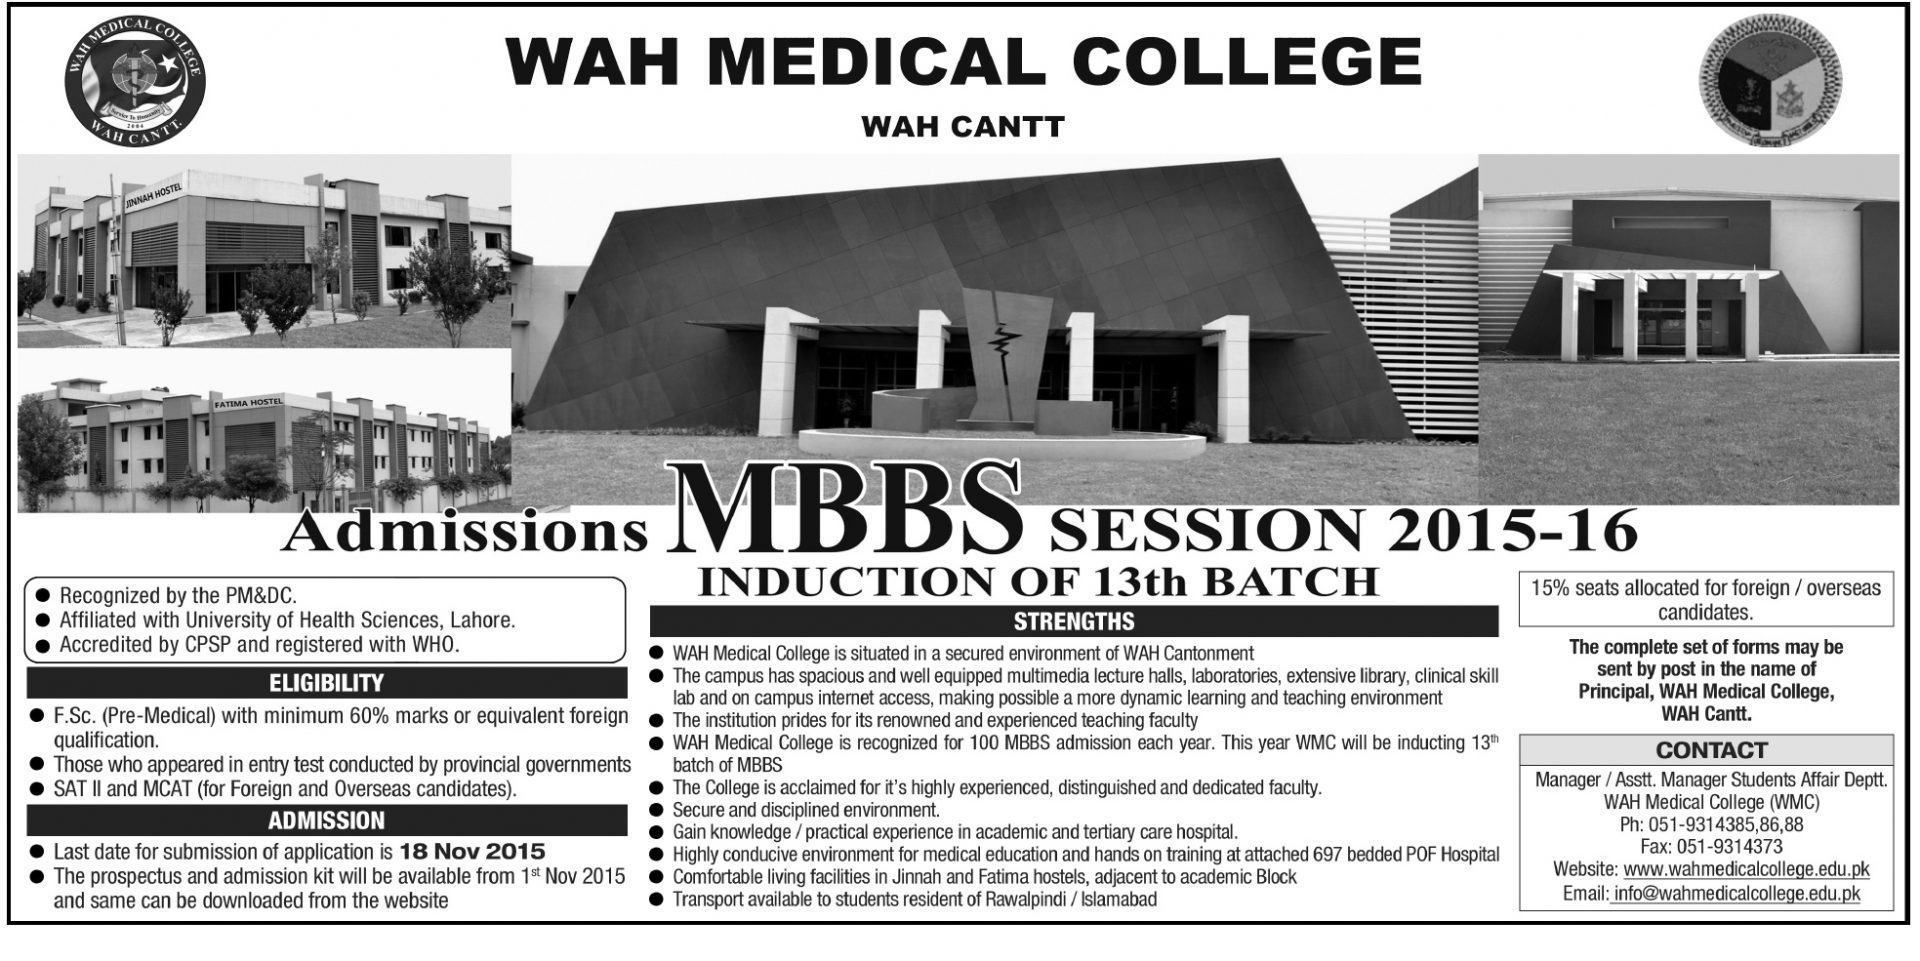 Wah Medical College Admissions 2015 Requirements, Dates